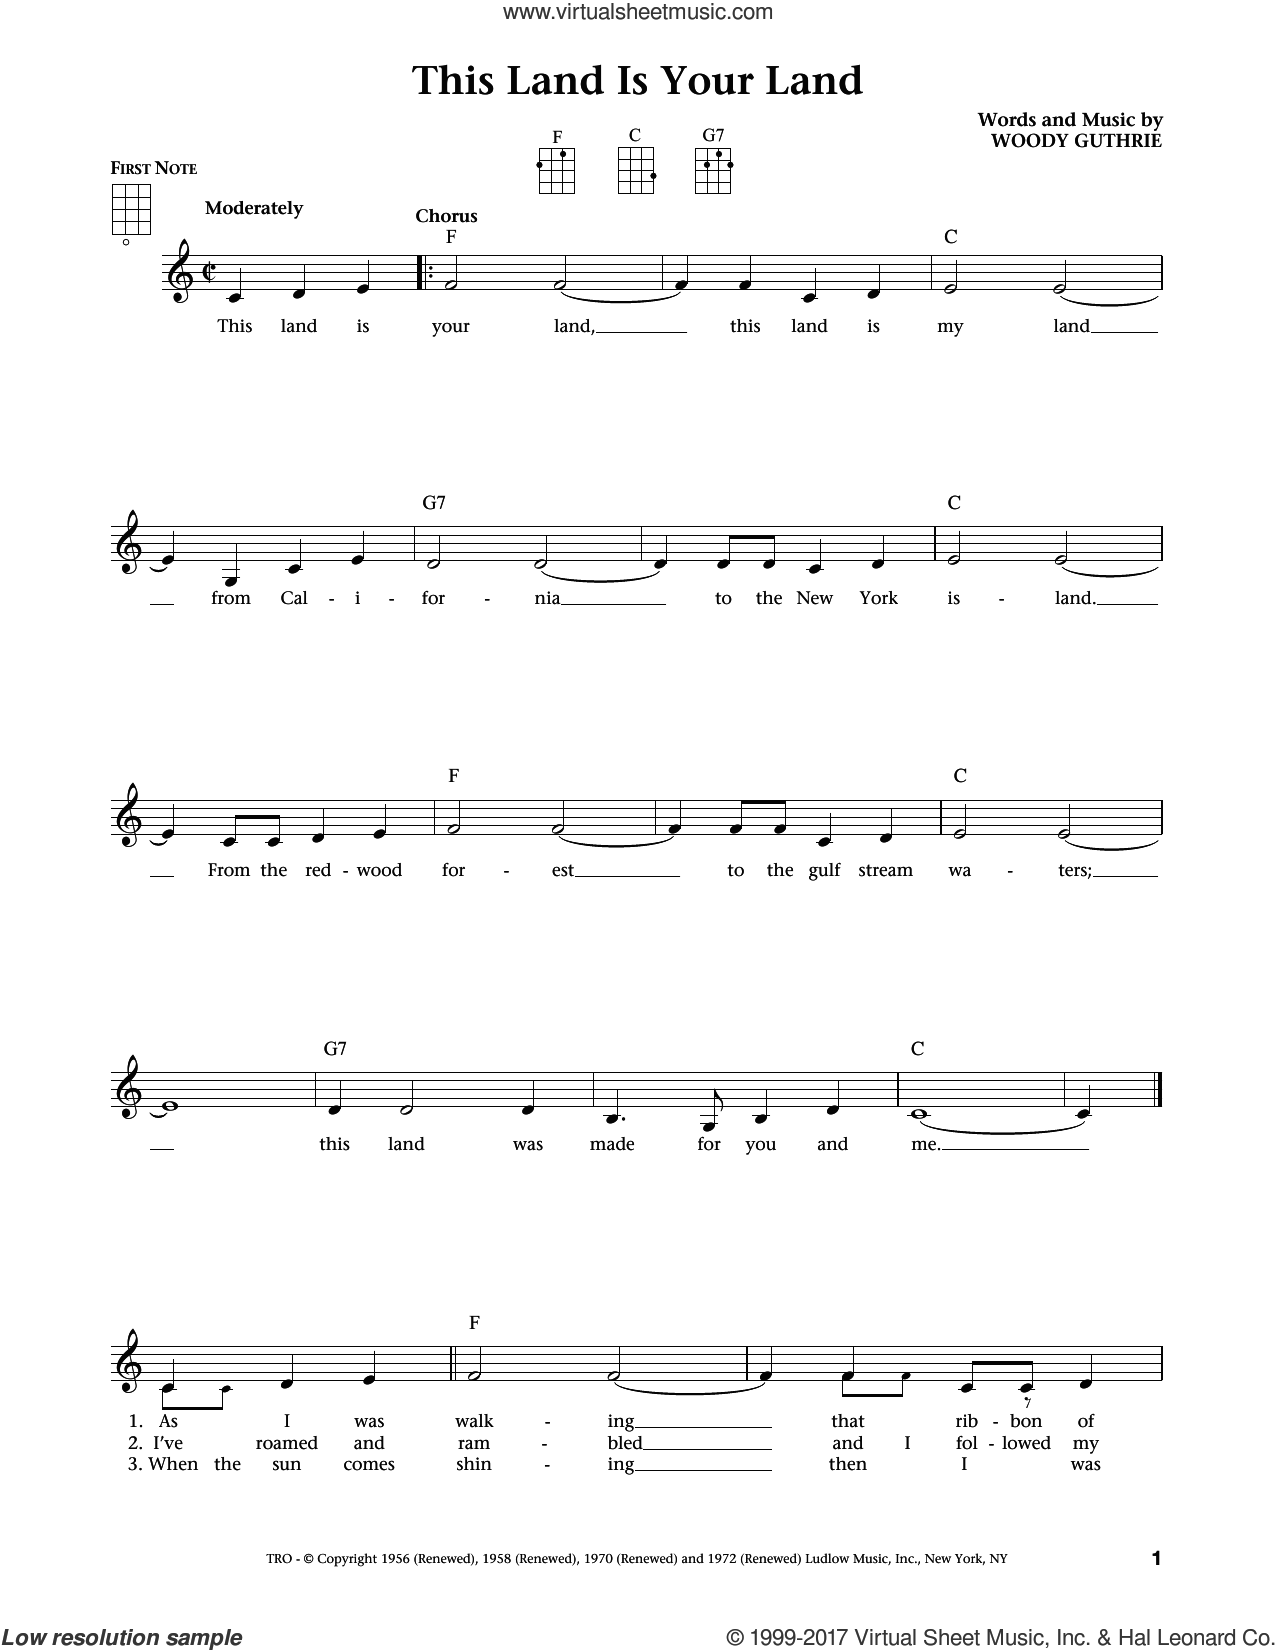 This Land Is Your Land (from The Daily Ukulele) (arr. Liz and Jim Beloff) sheet music for ukulele by Woody Guthrie, Jim Beloff and Liz Beloff, intermediate skill level